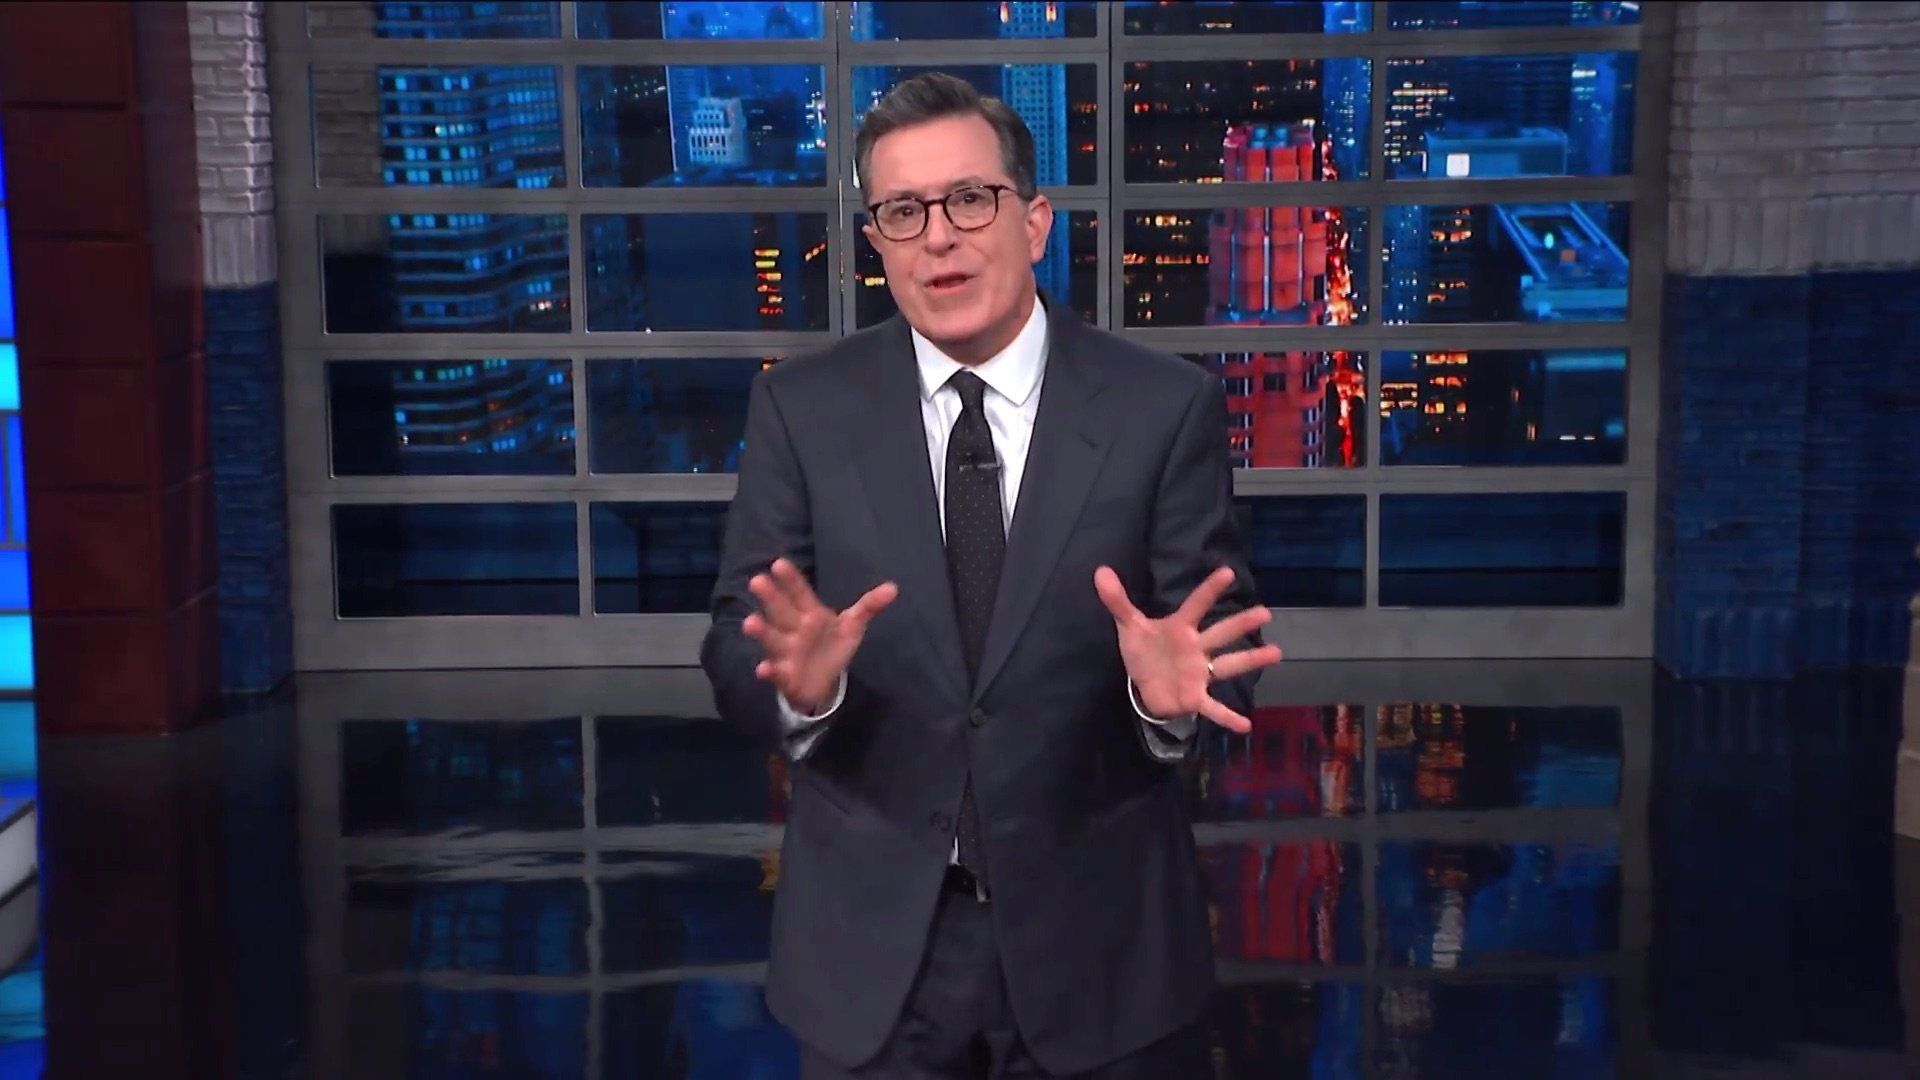 Colbert Gives Robert Mueller A Hot Tip On How To End The Investigation